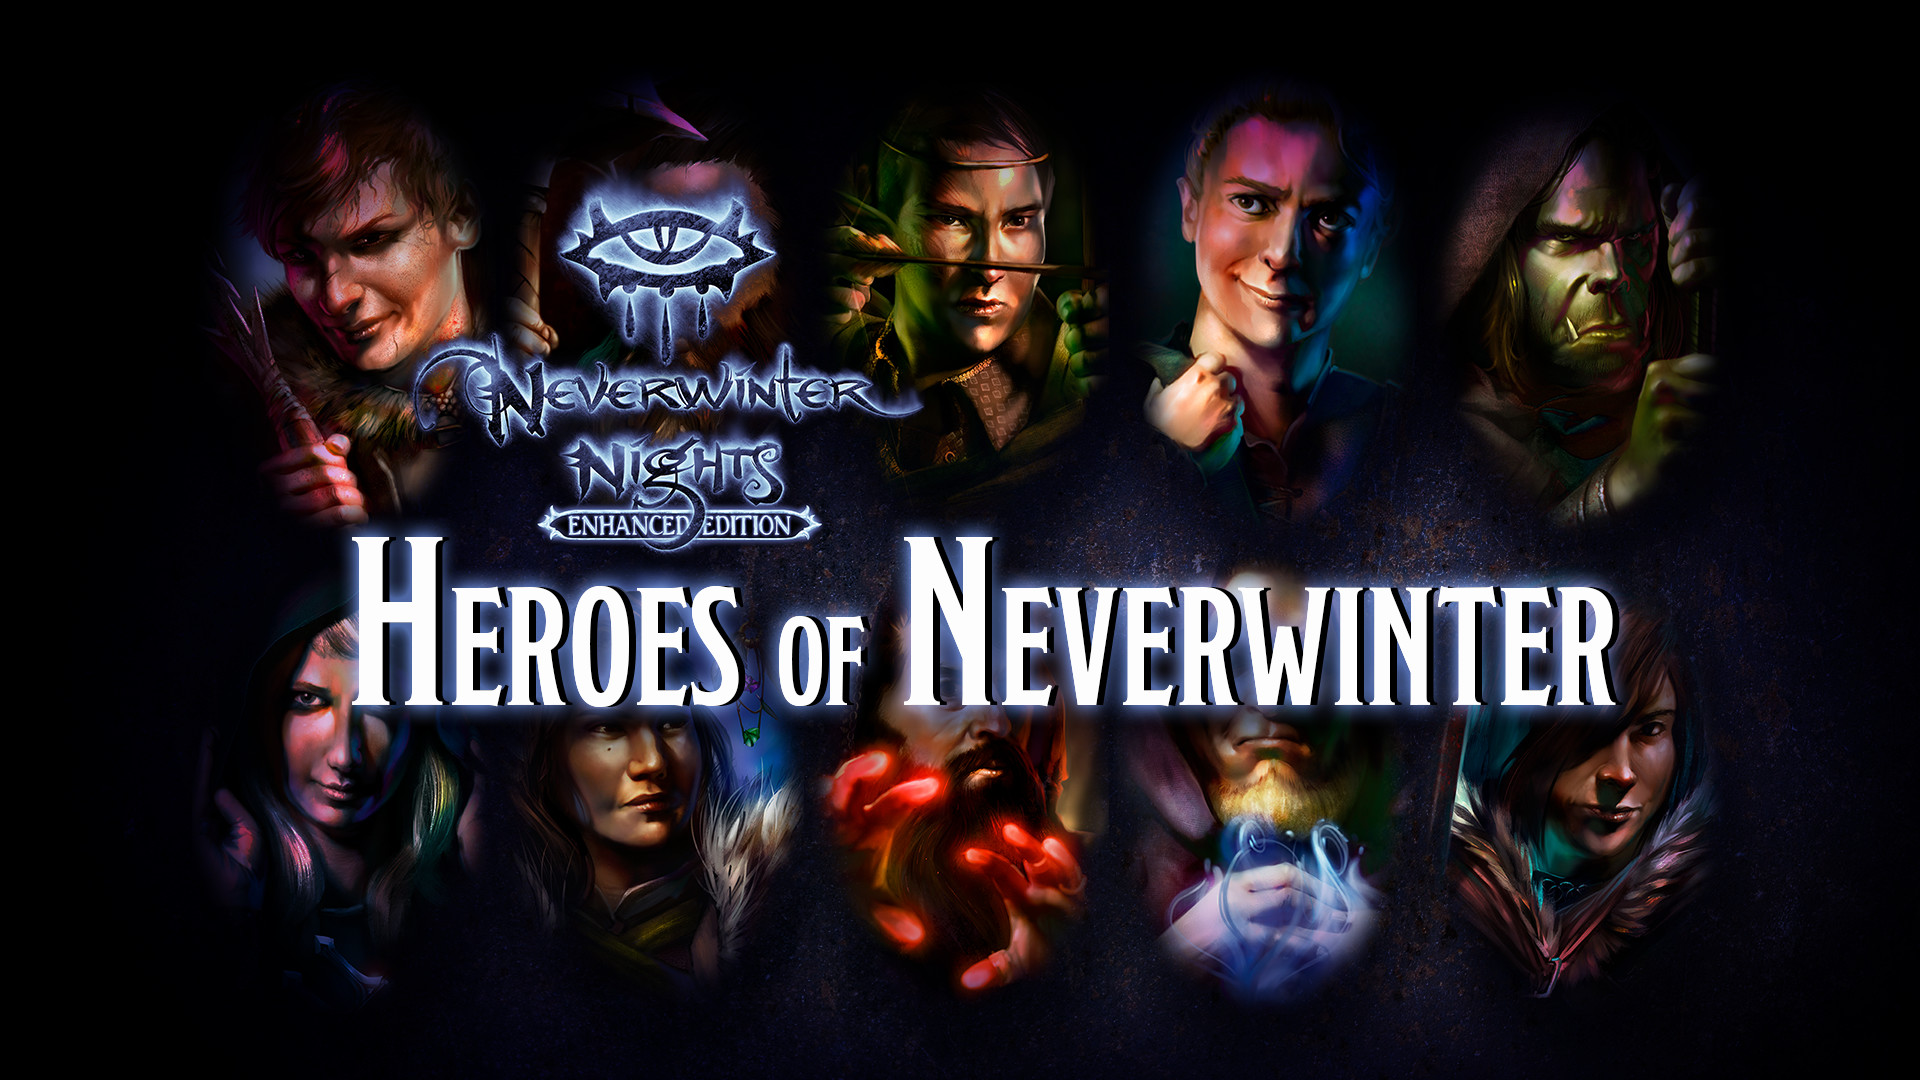 Neverwinter Nights: Enhanced Edition - Heroes of Neverwinter 2018 pc game Img-1